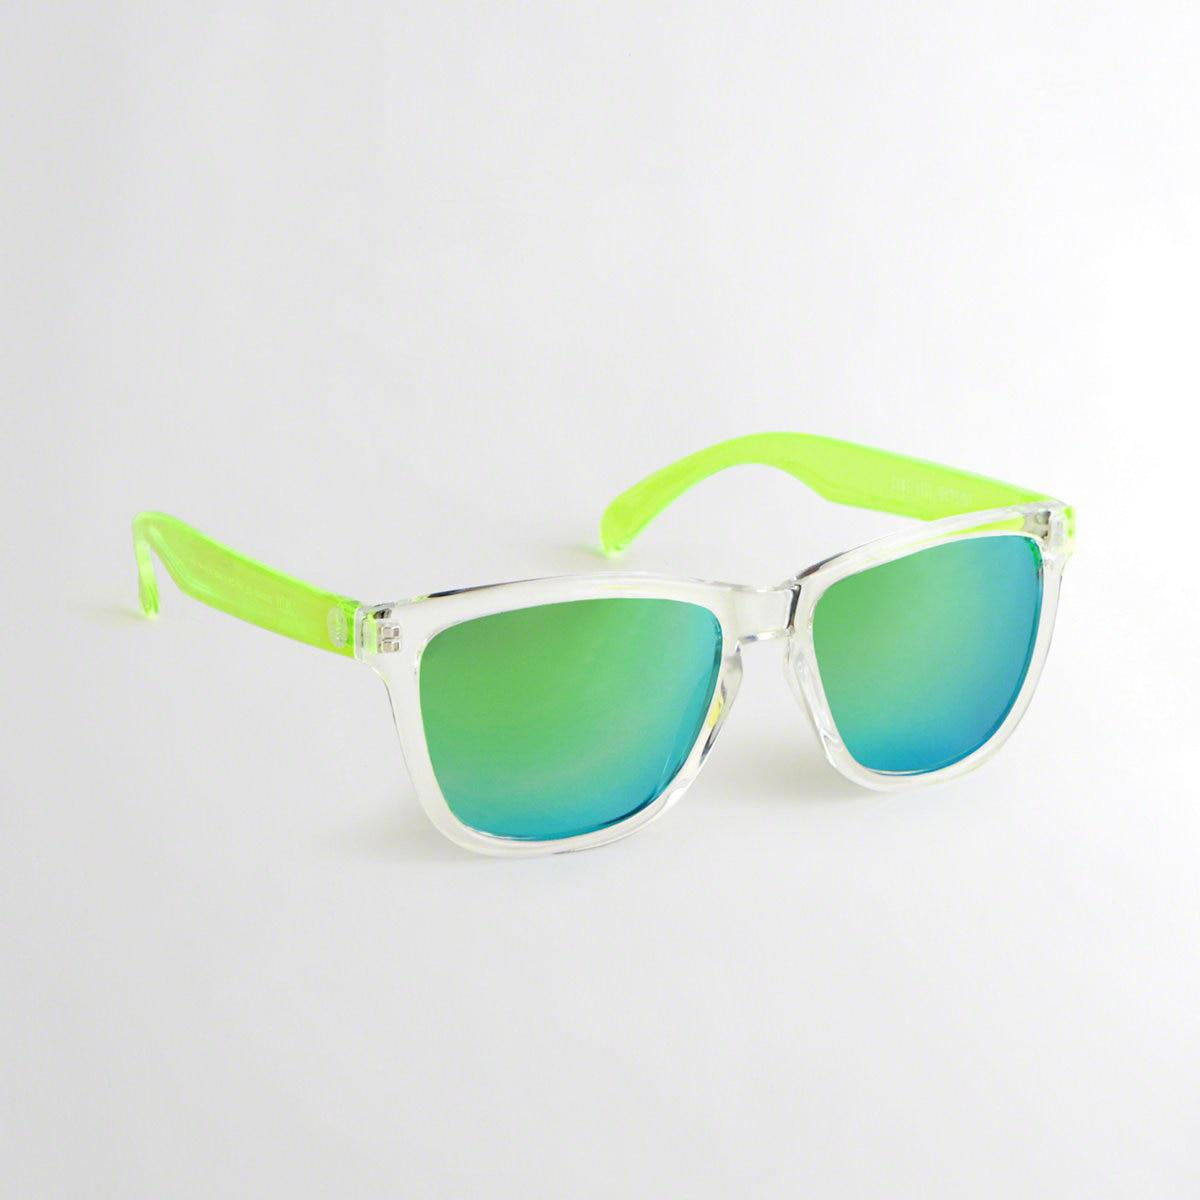 f8562449c2f Hollister Guys Sunski Original Sunglasses From Hollister in Green ...